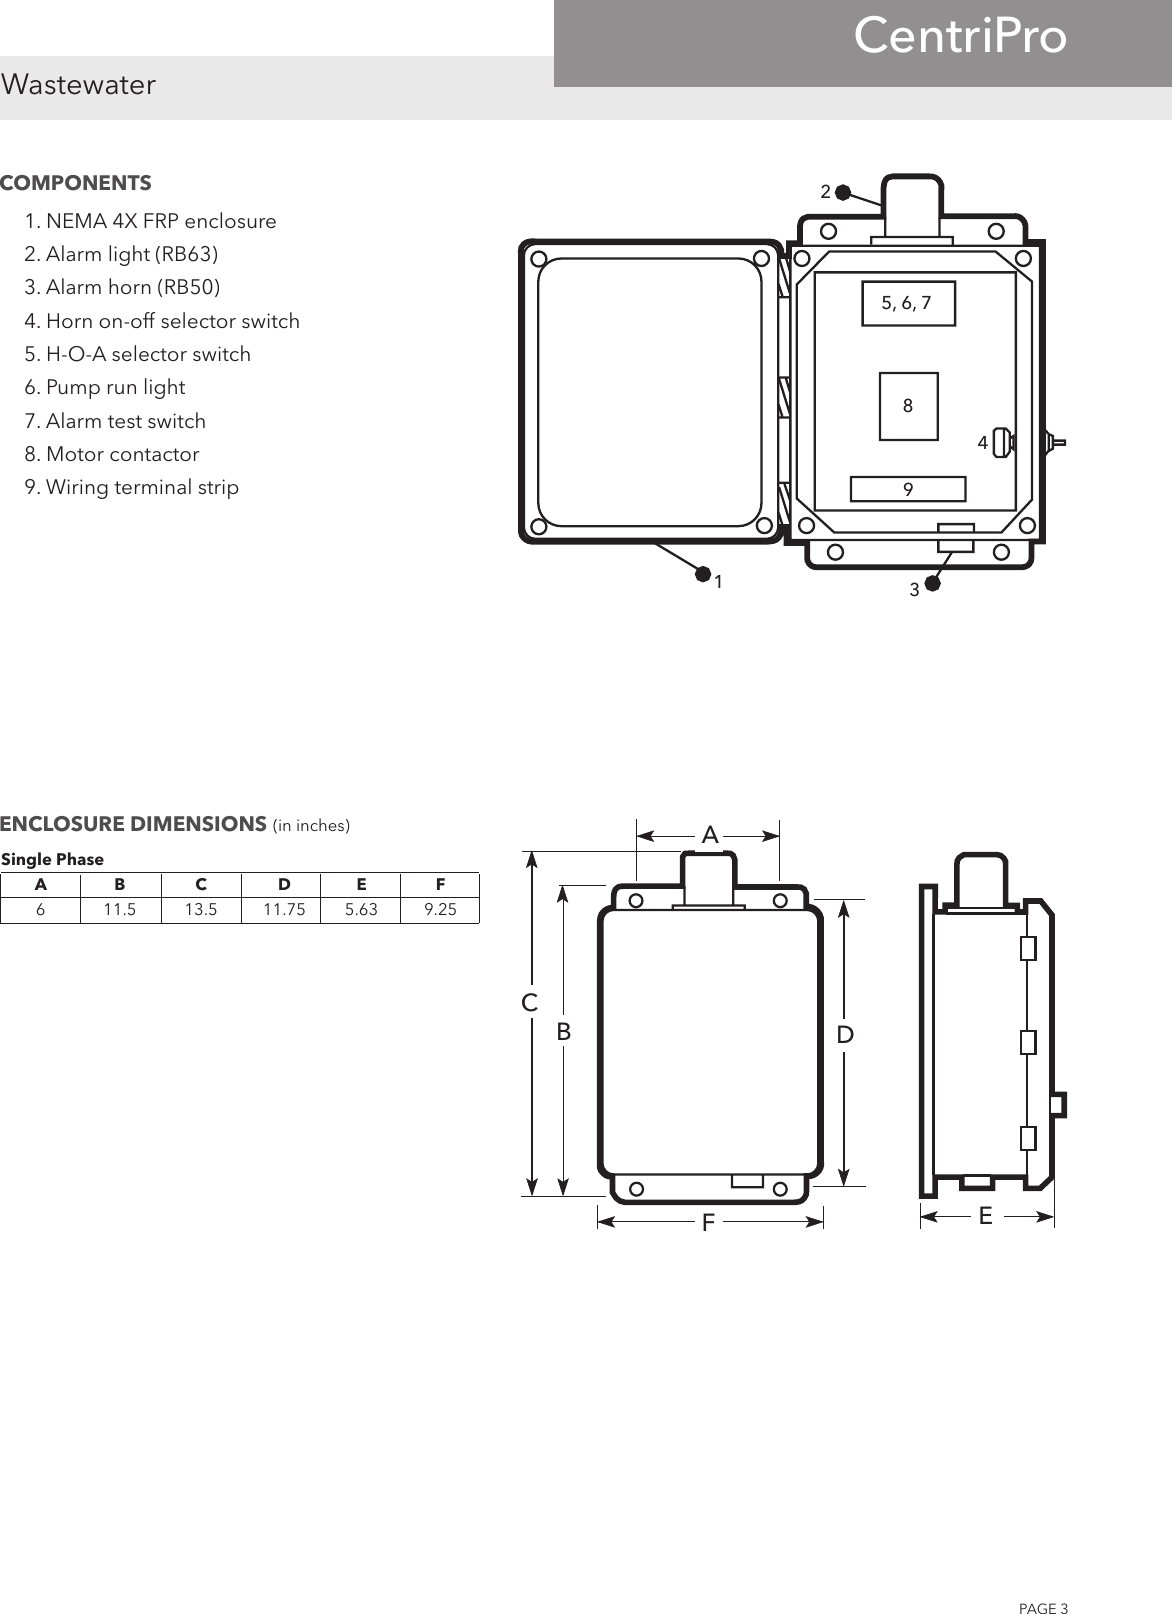 540190 1 Centripro S10015 Simplex Control Panel Brochure Pump Wiring Diagram Page 3 Of 4